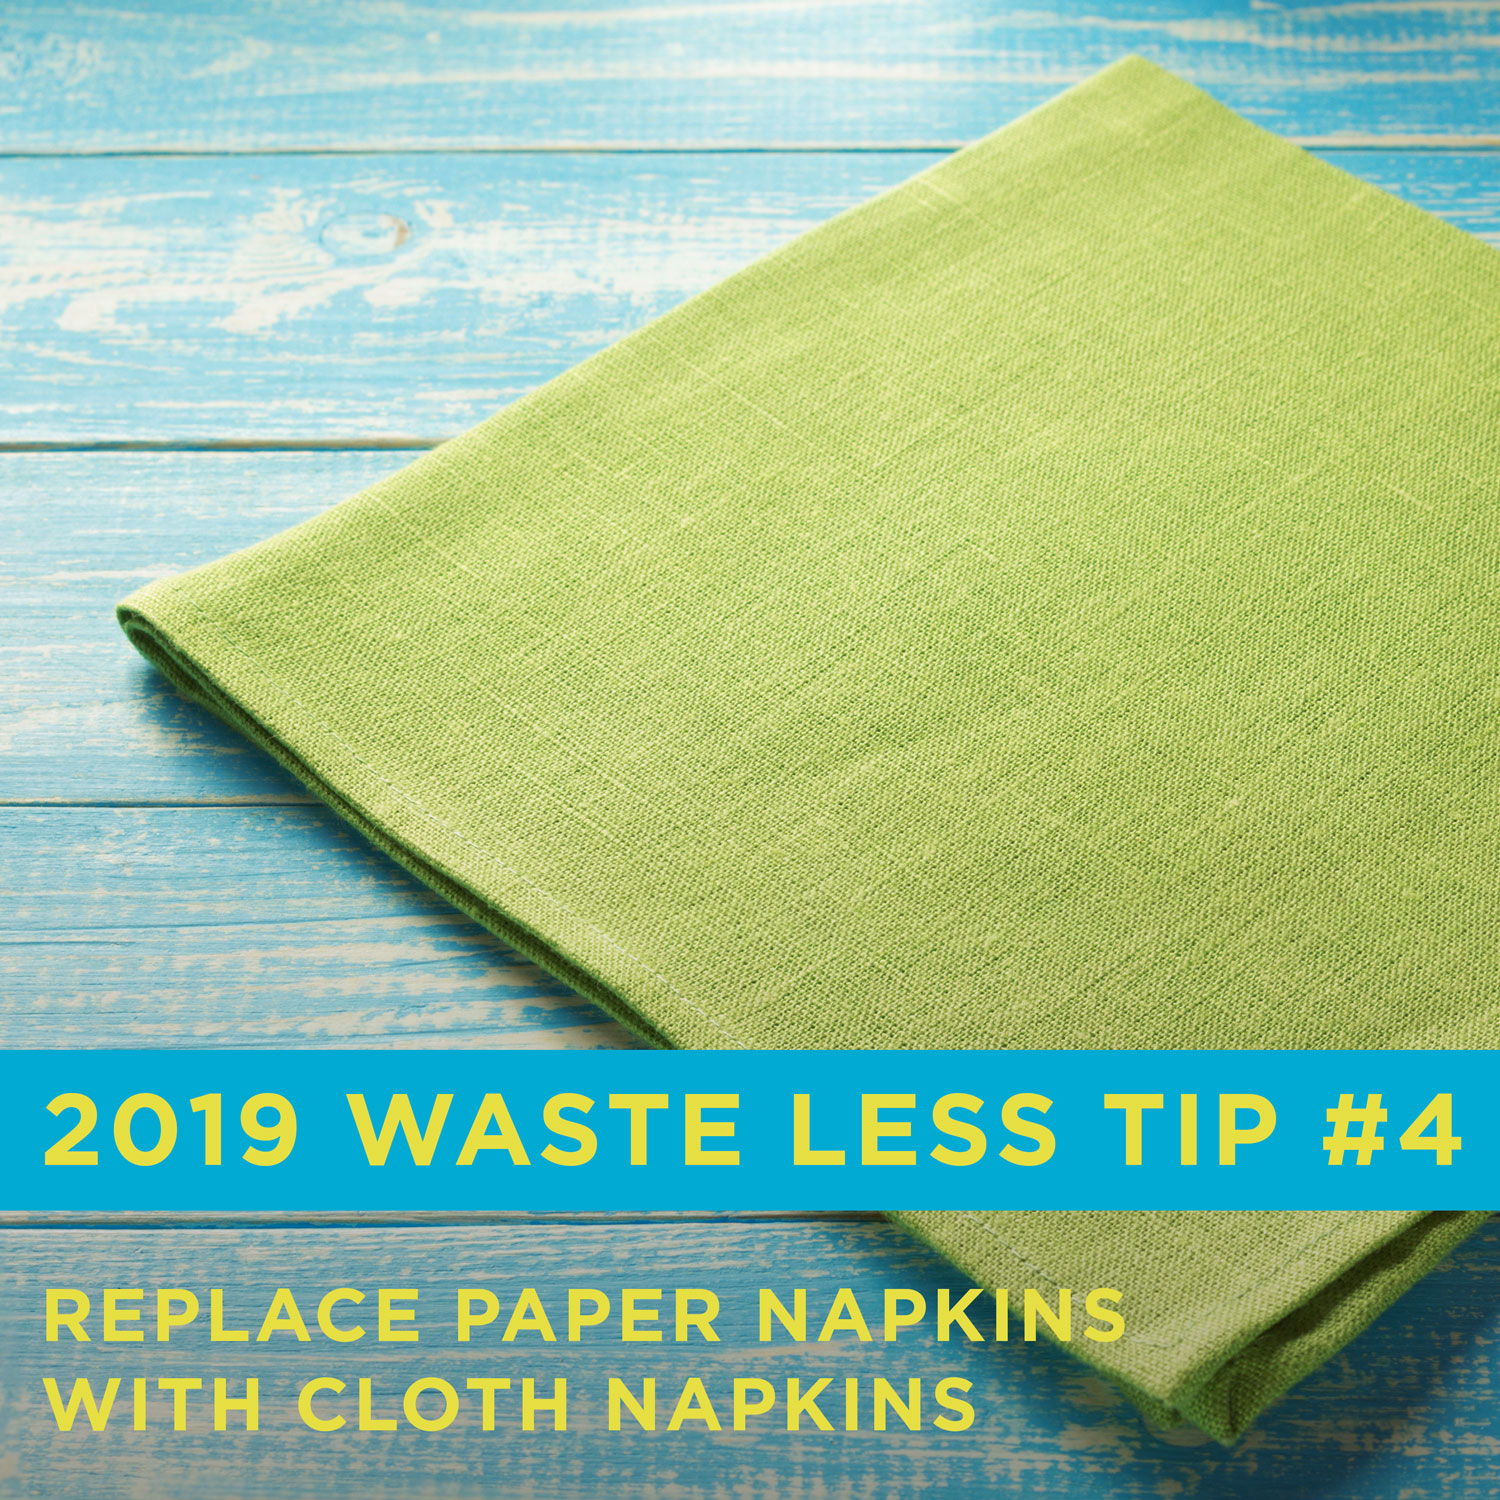 Environmentally friendly tip 4 is replace paper napkins with cloth napkins